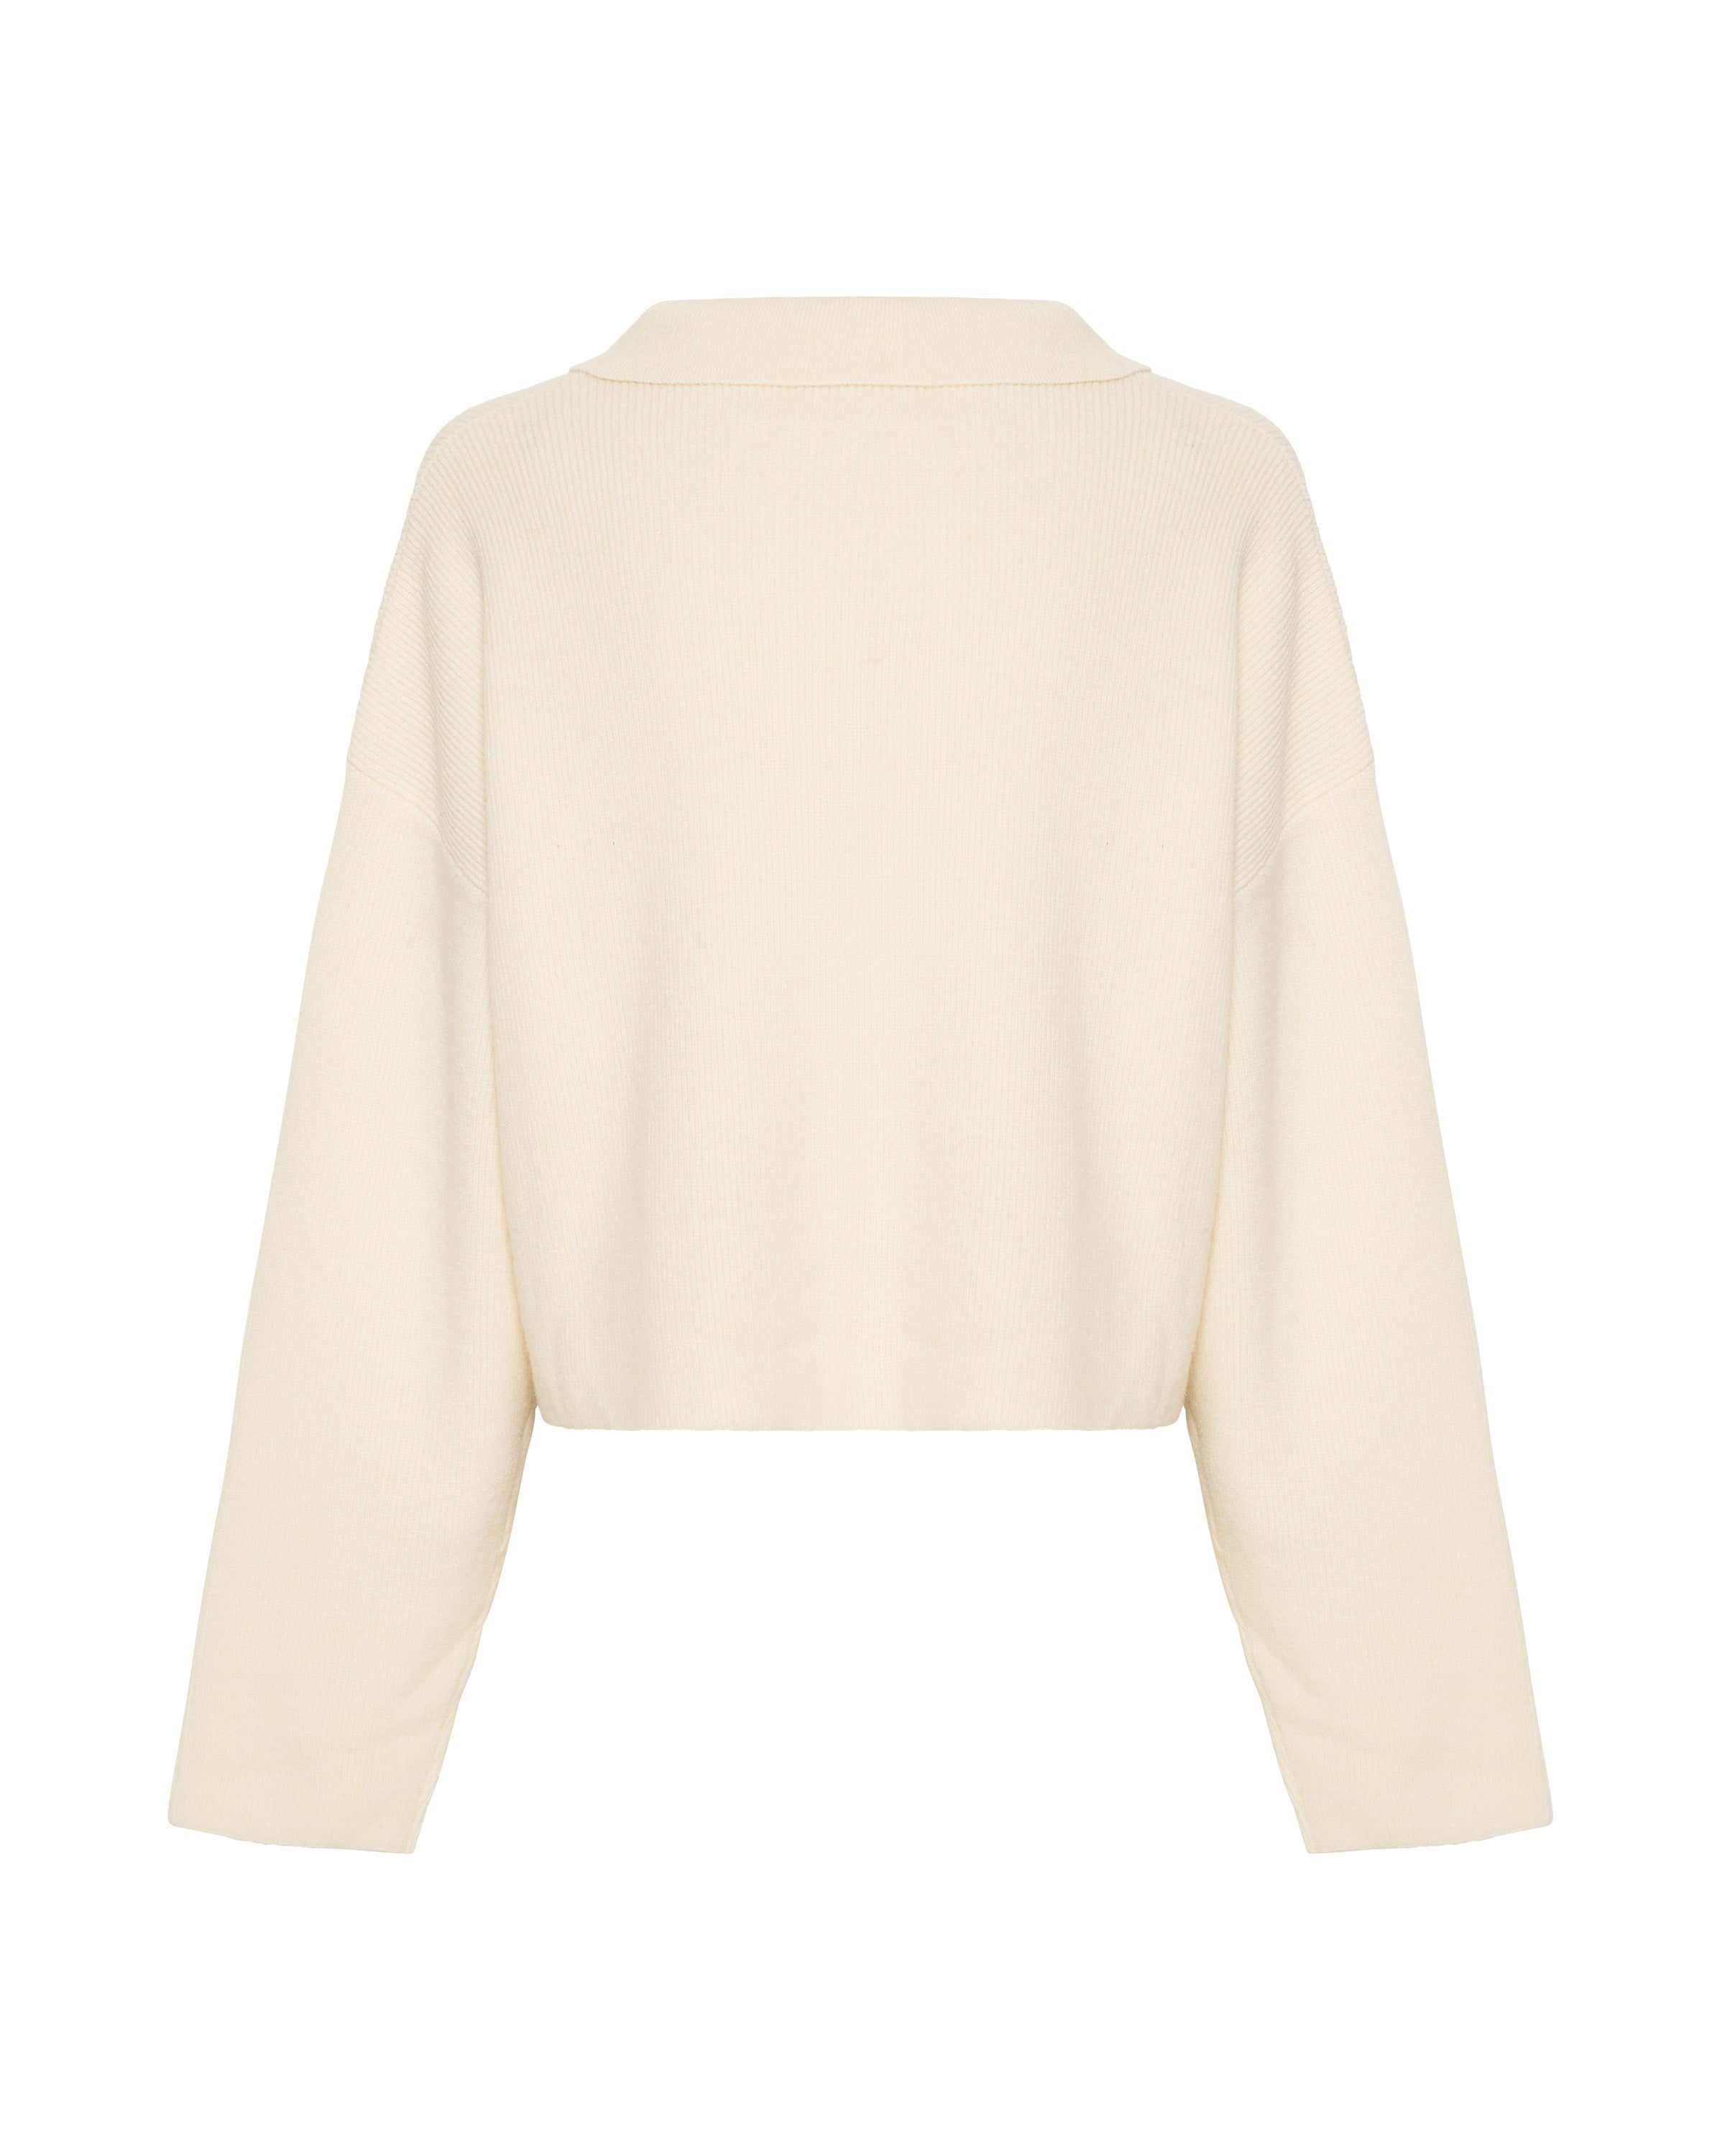 OVERSIZED COLLARED KNIT | CREAM